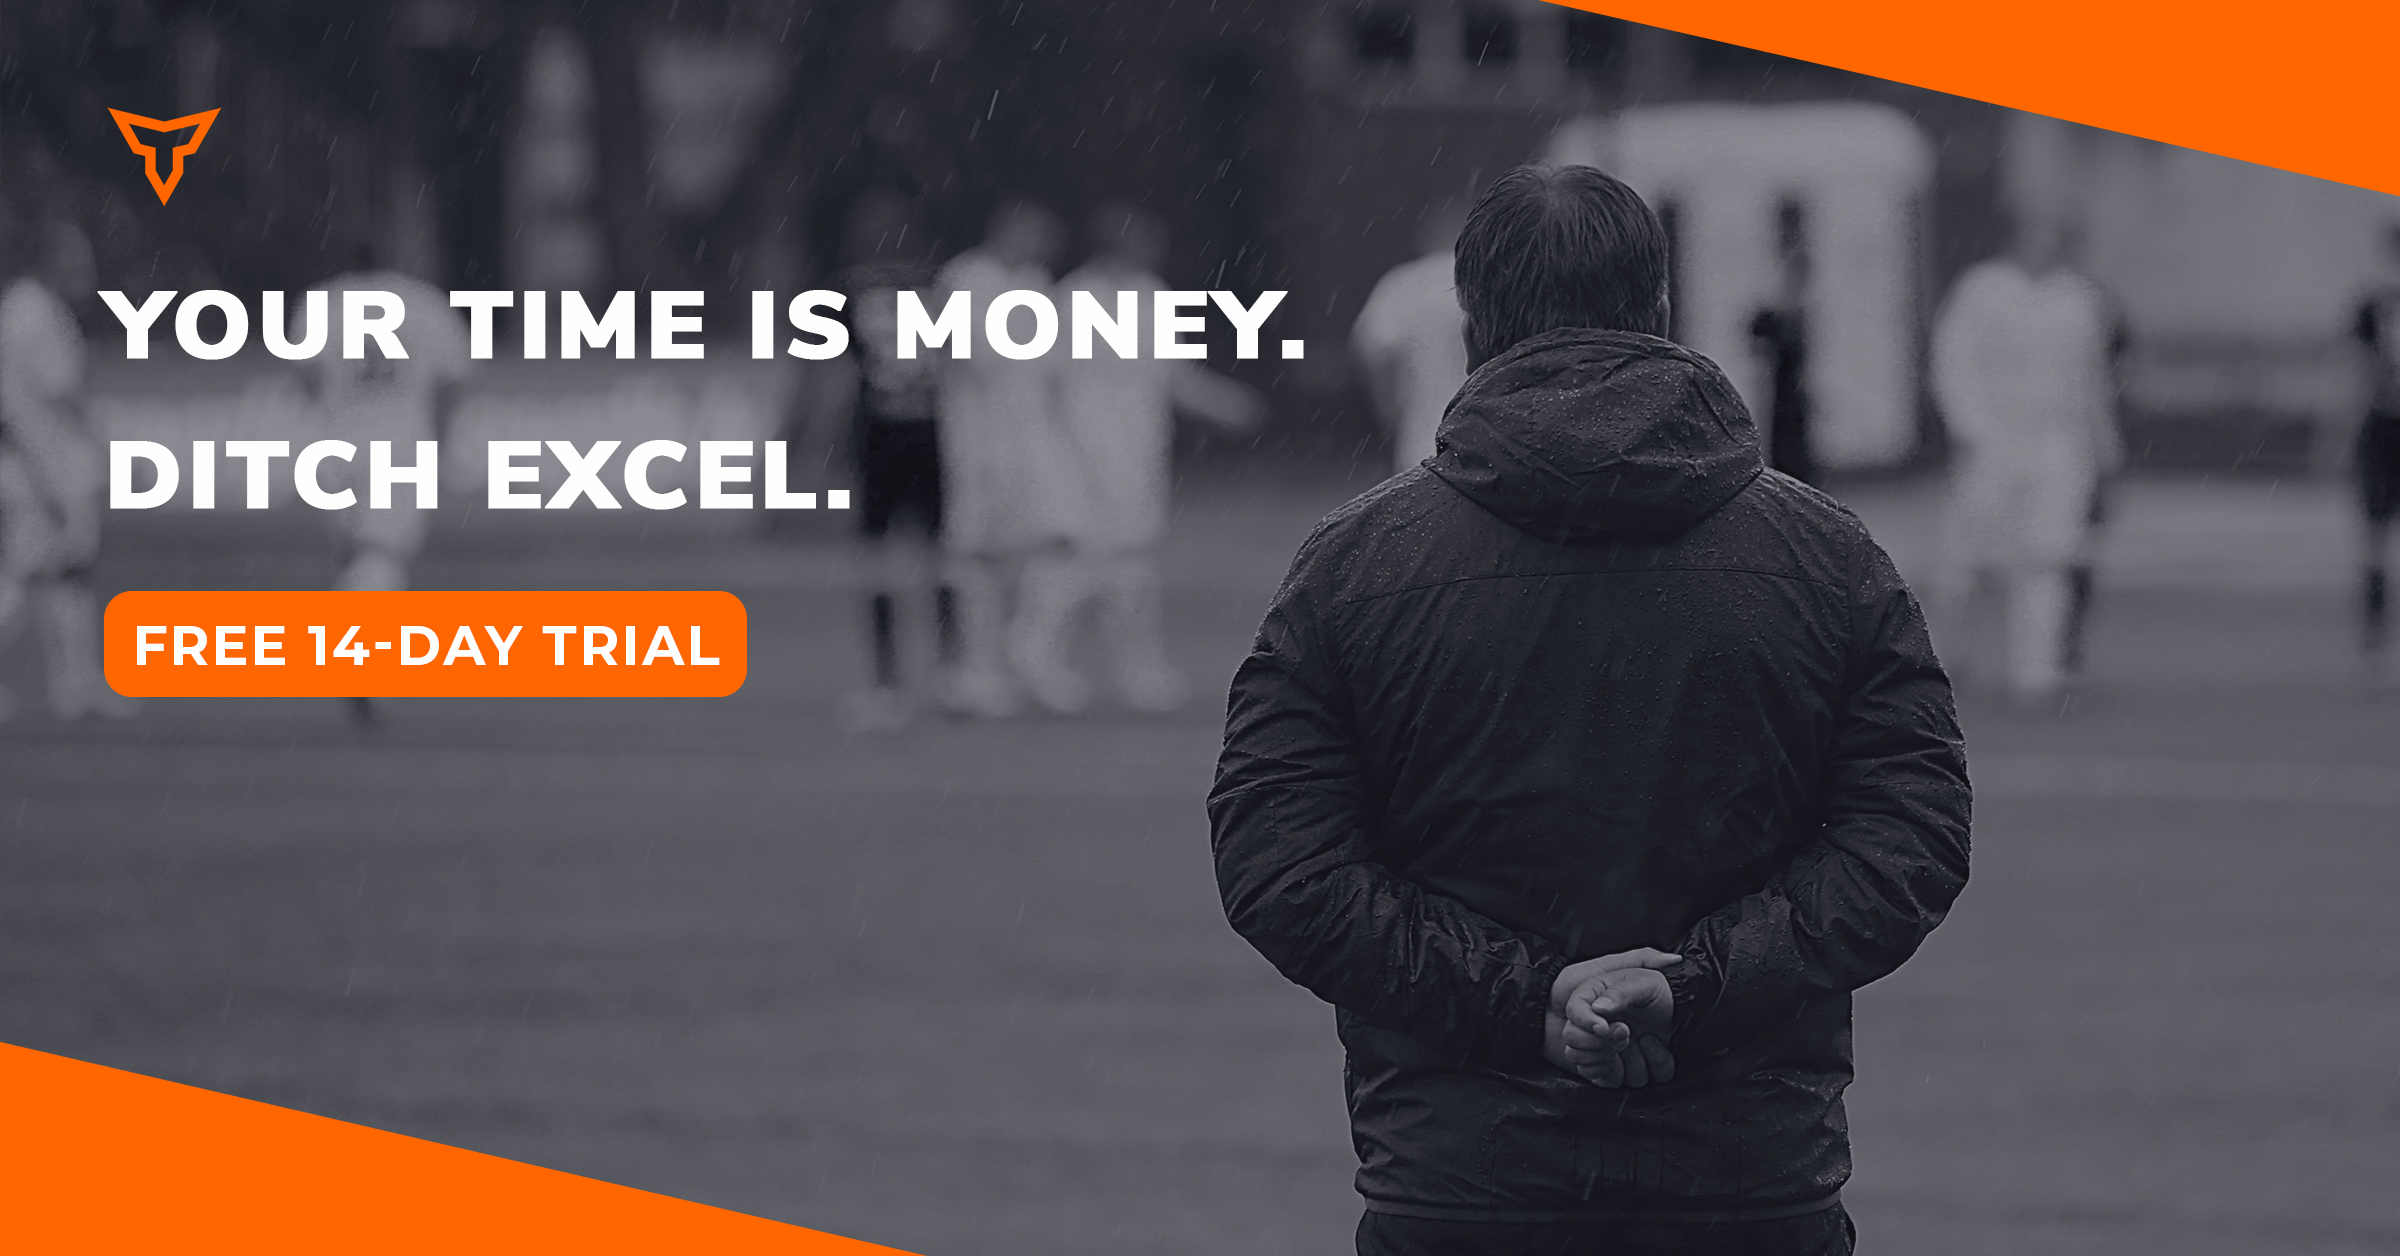 your time is money-free trial